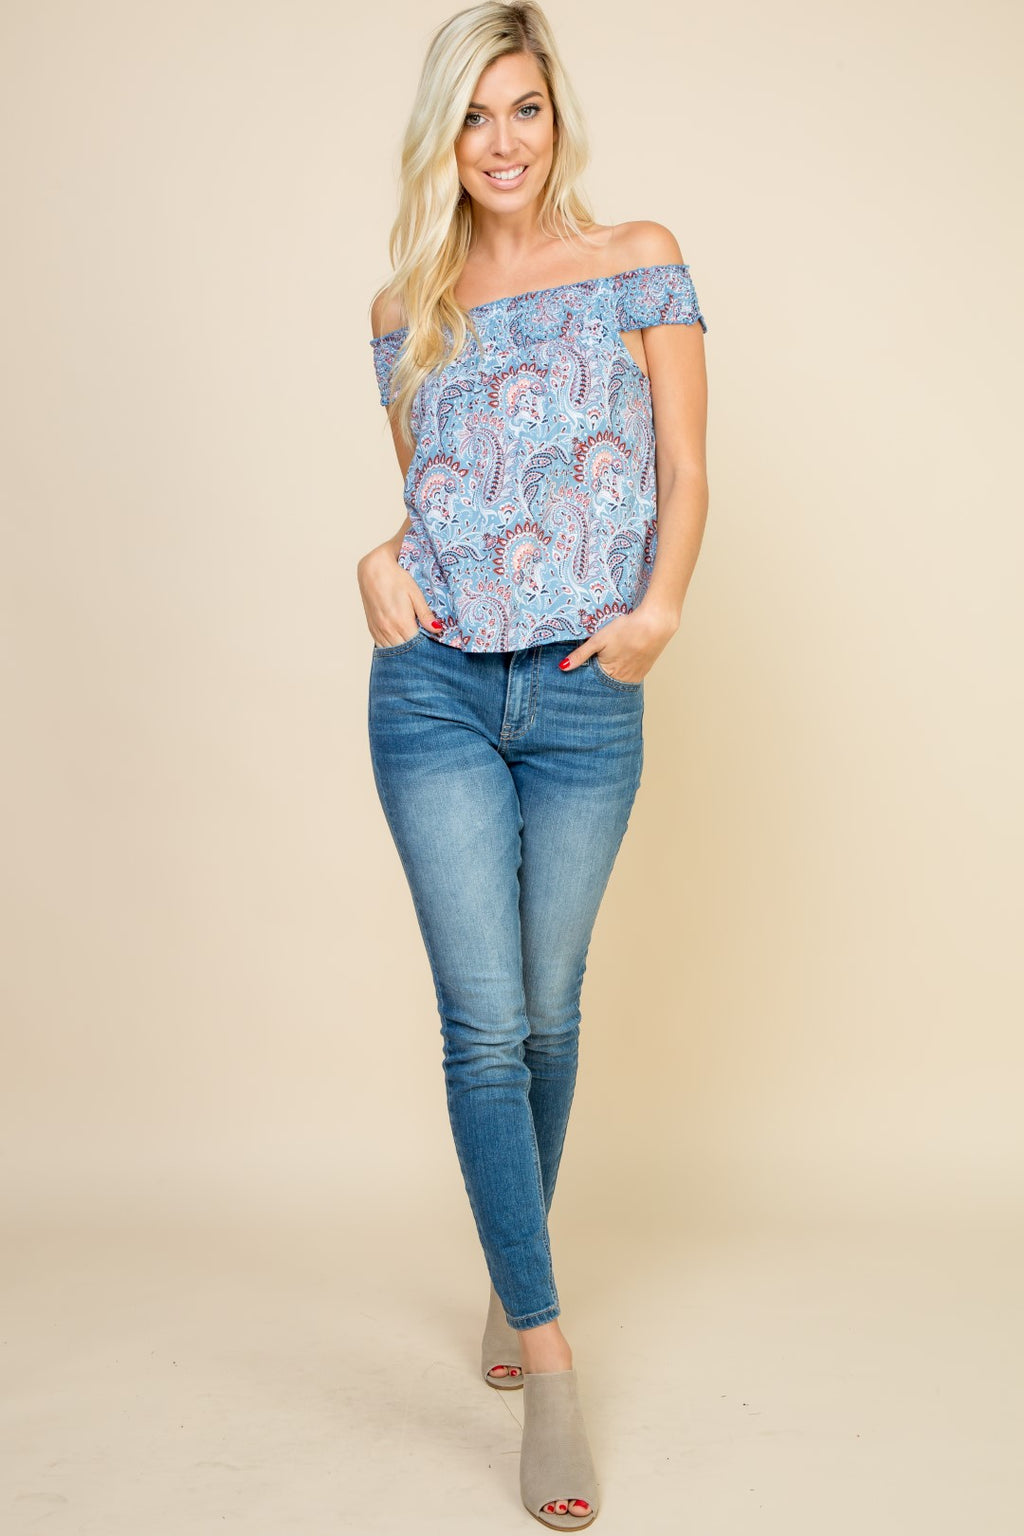 Blue Paisley Off The Shoulder Top - 19 Dollars Or Less